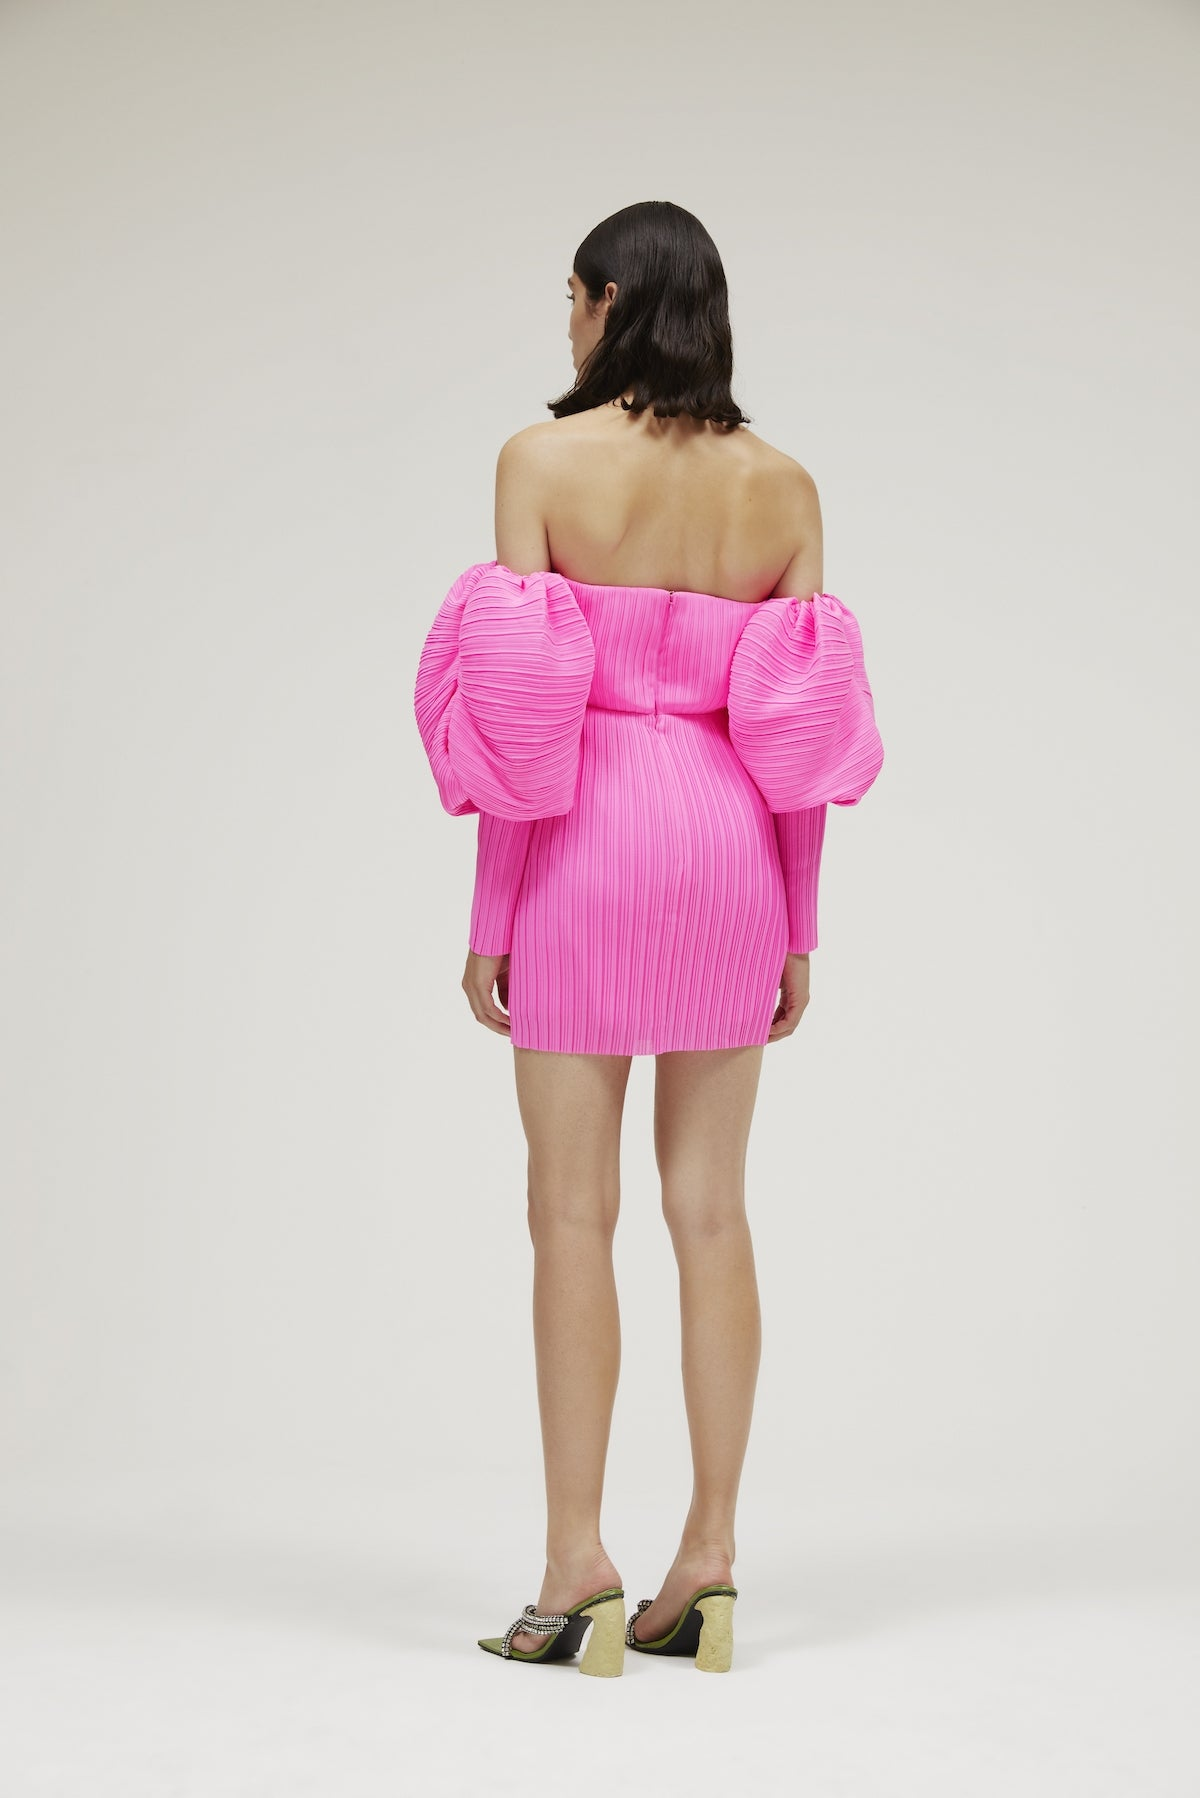 The Skye Dress in Acid Pink